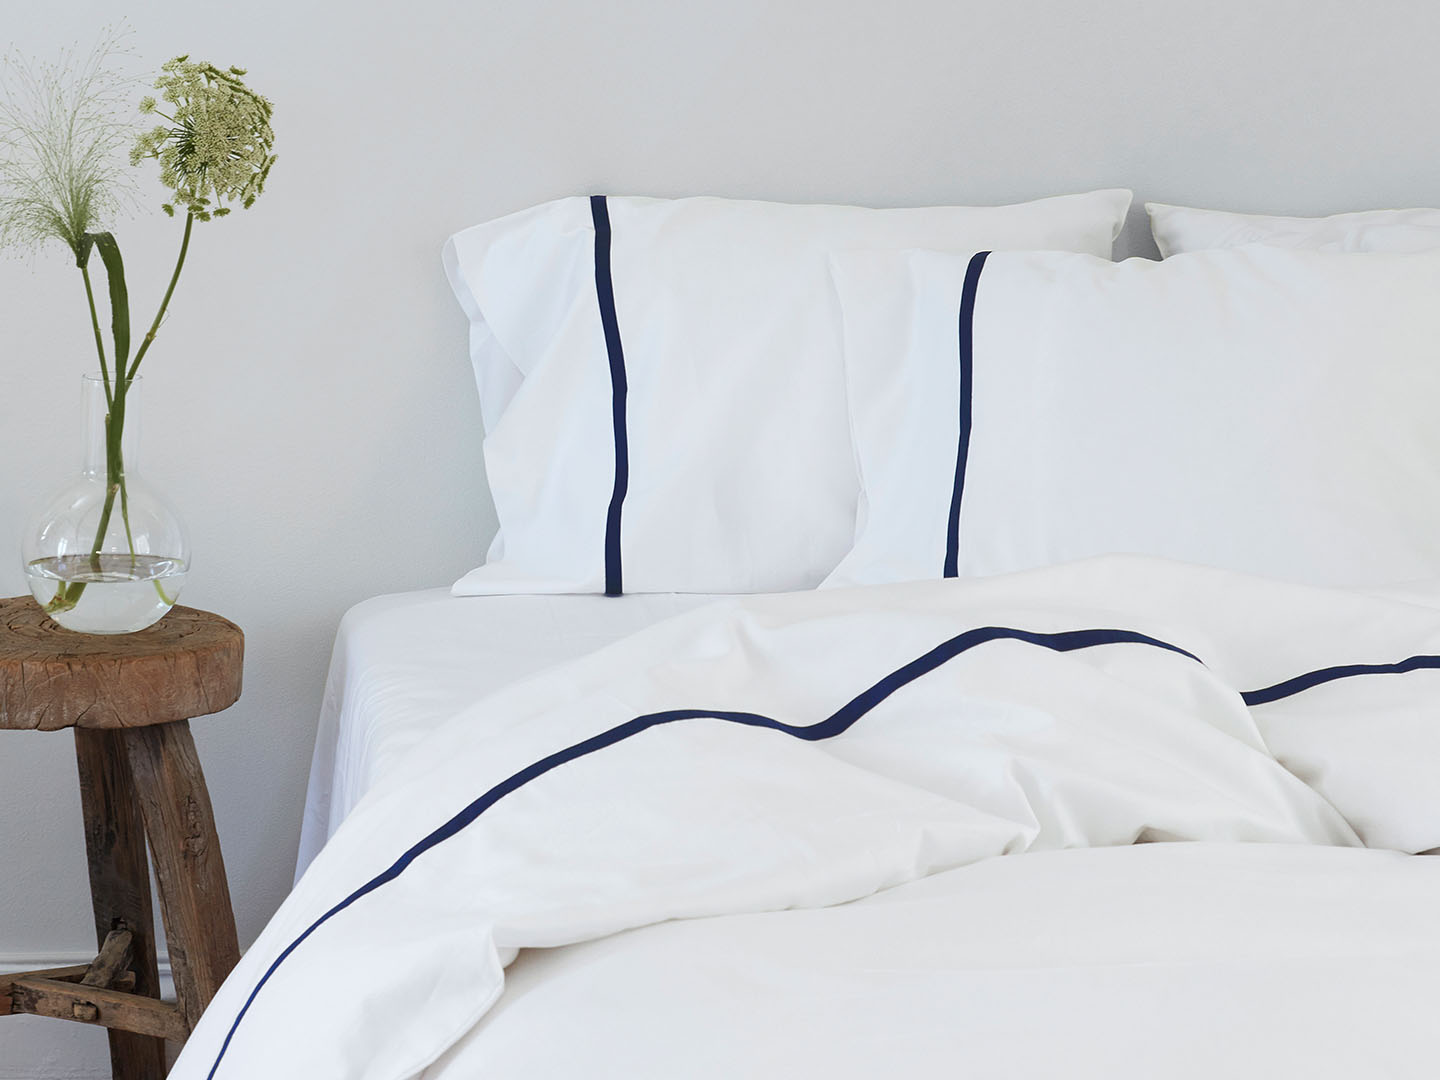 Duvet Cover Gatt - Cloud White in the group Bedding / Duvet Covers at A L V A (1171)